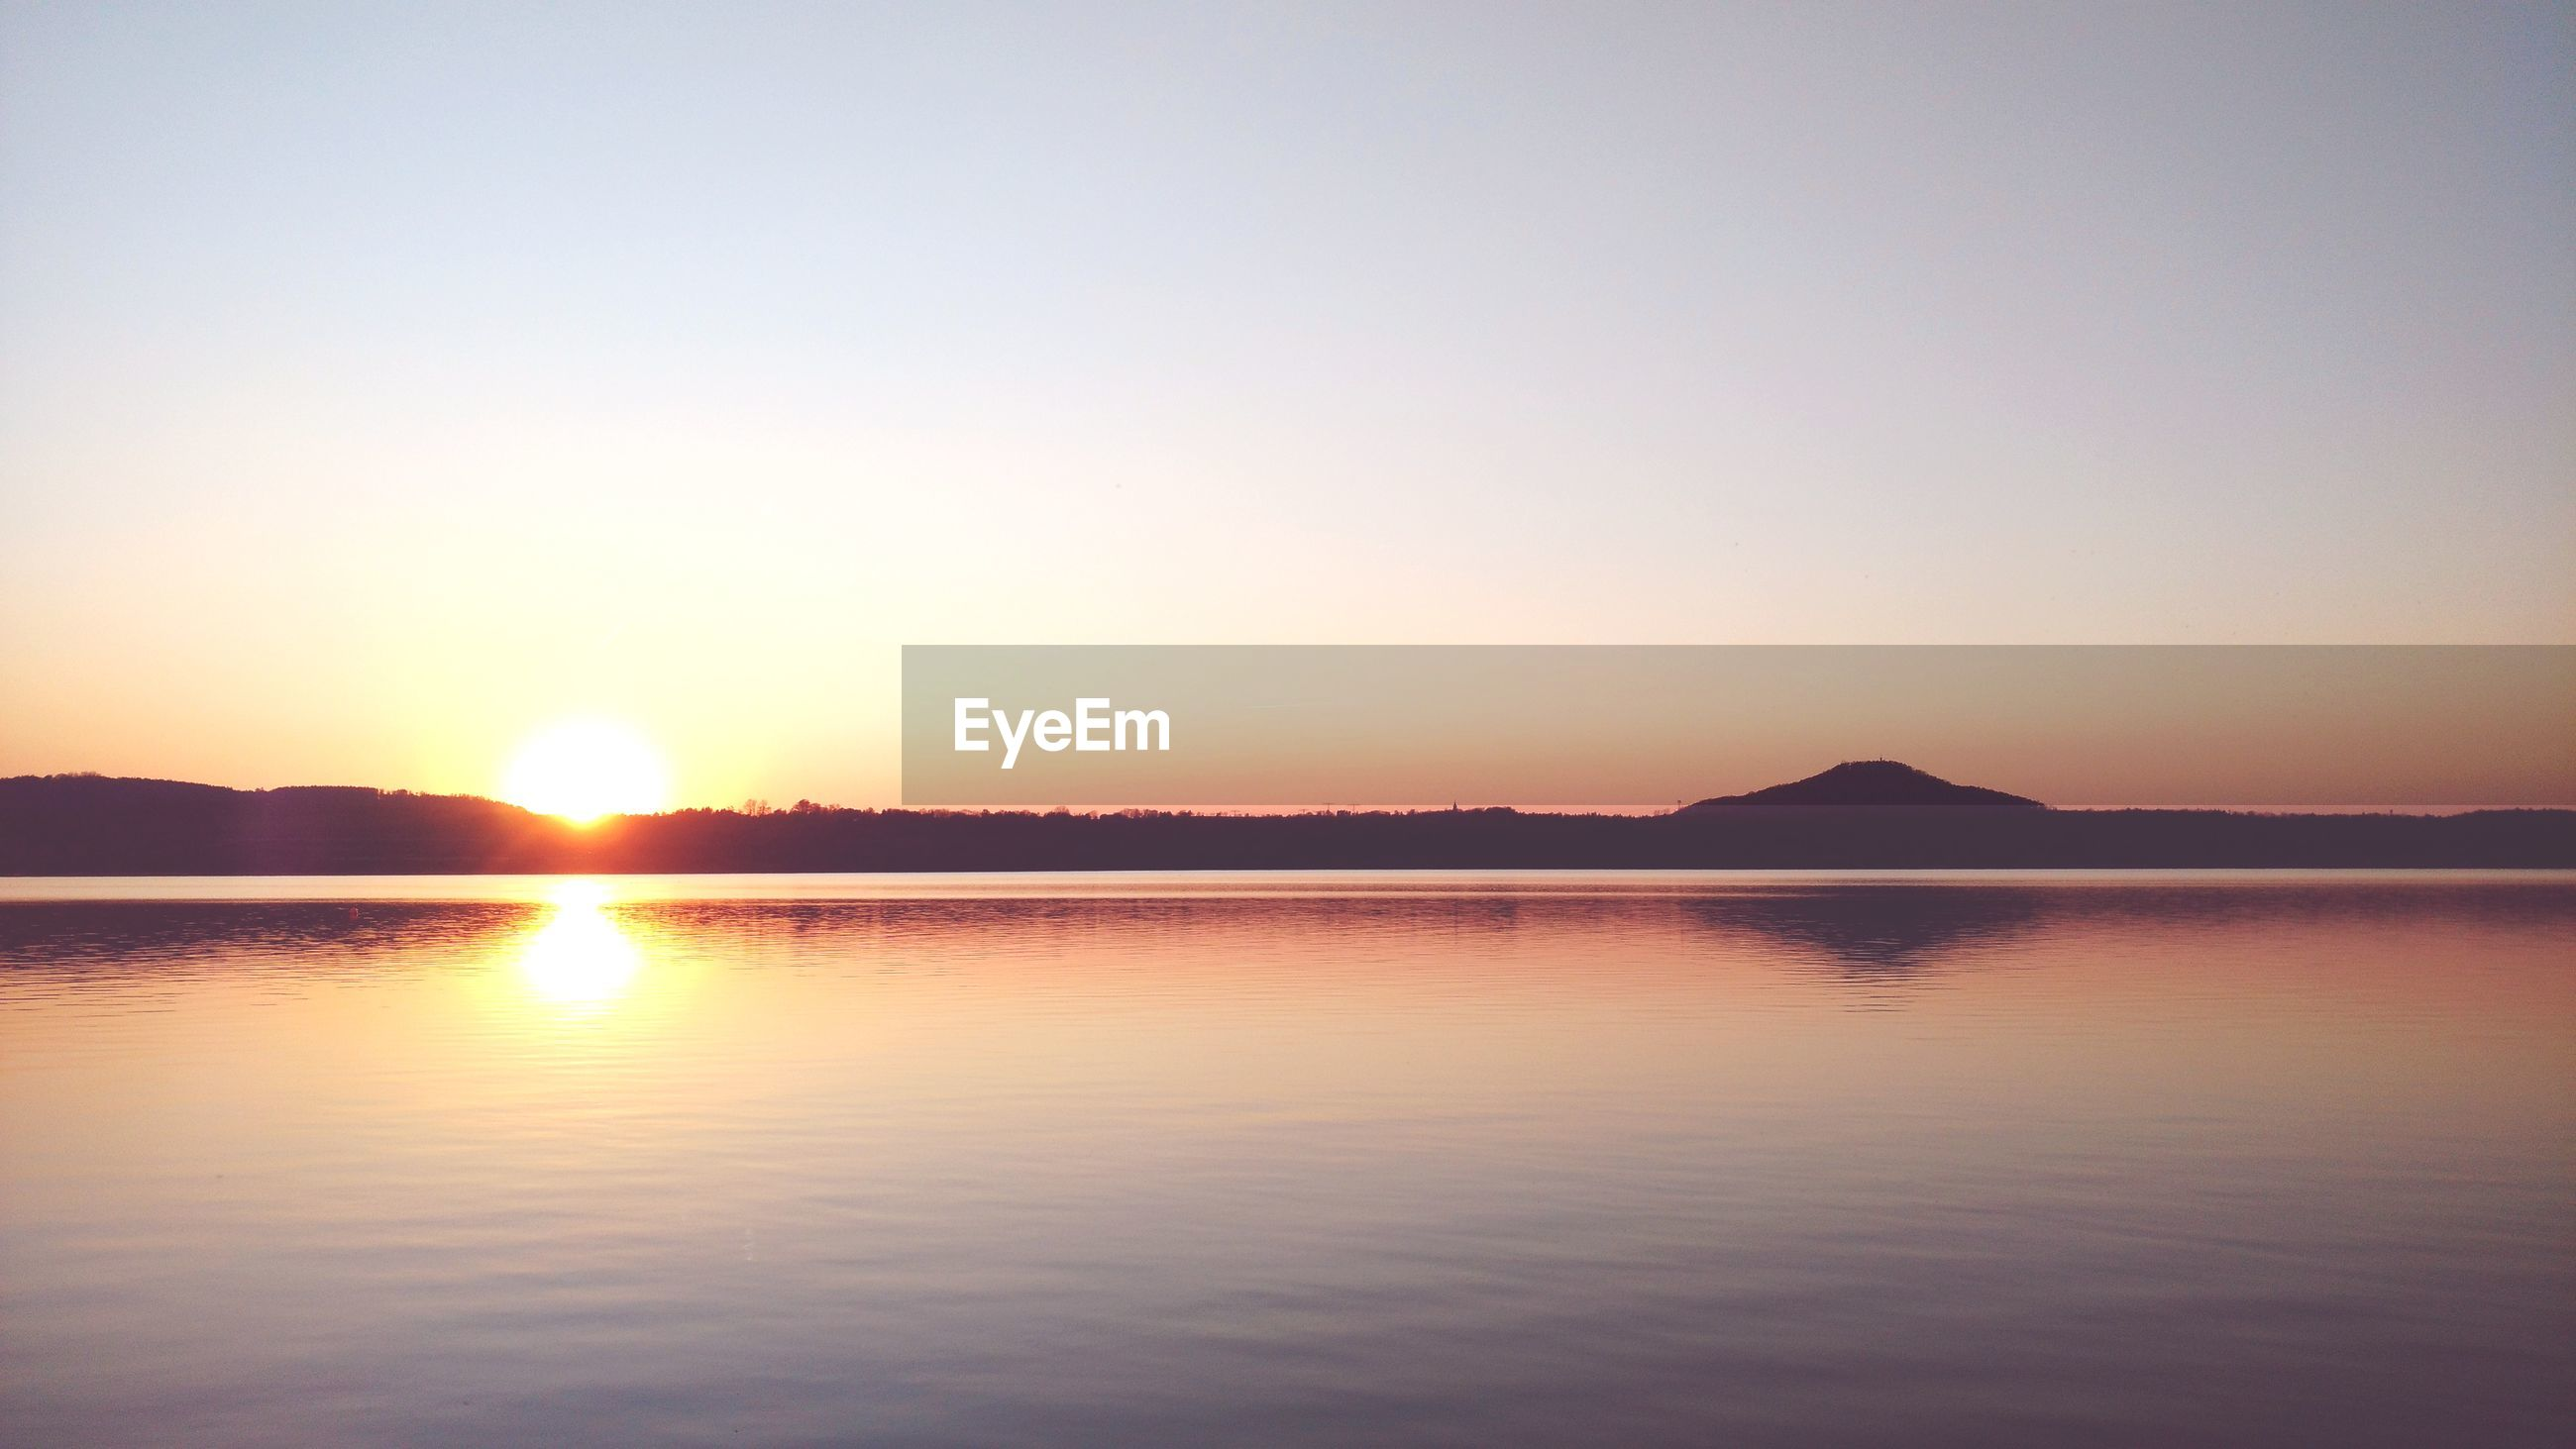 SCENIC VIEW OF SUNSET OVER MOUNTAINS AGAINST SKY